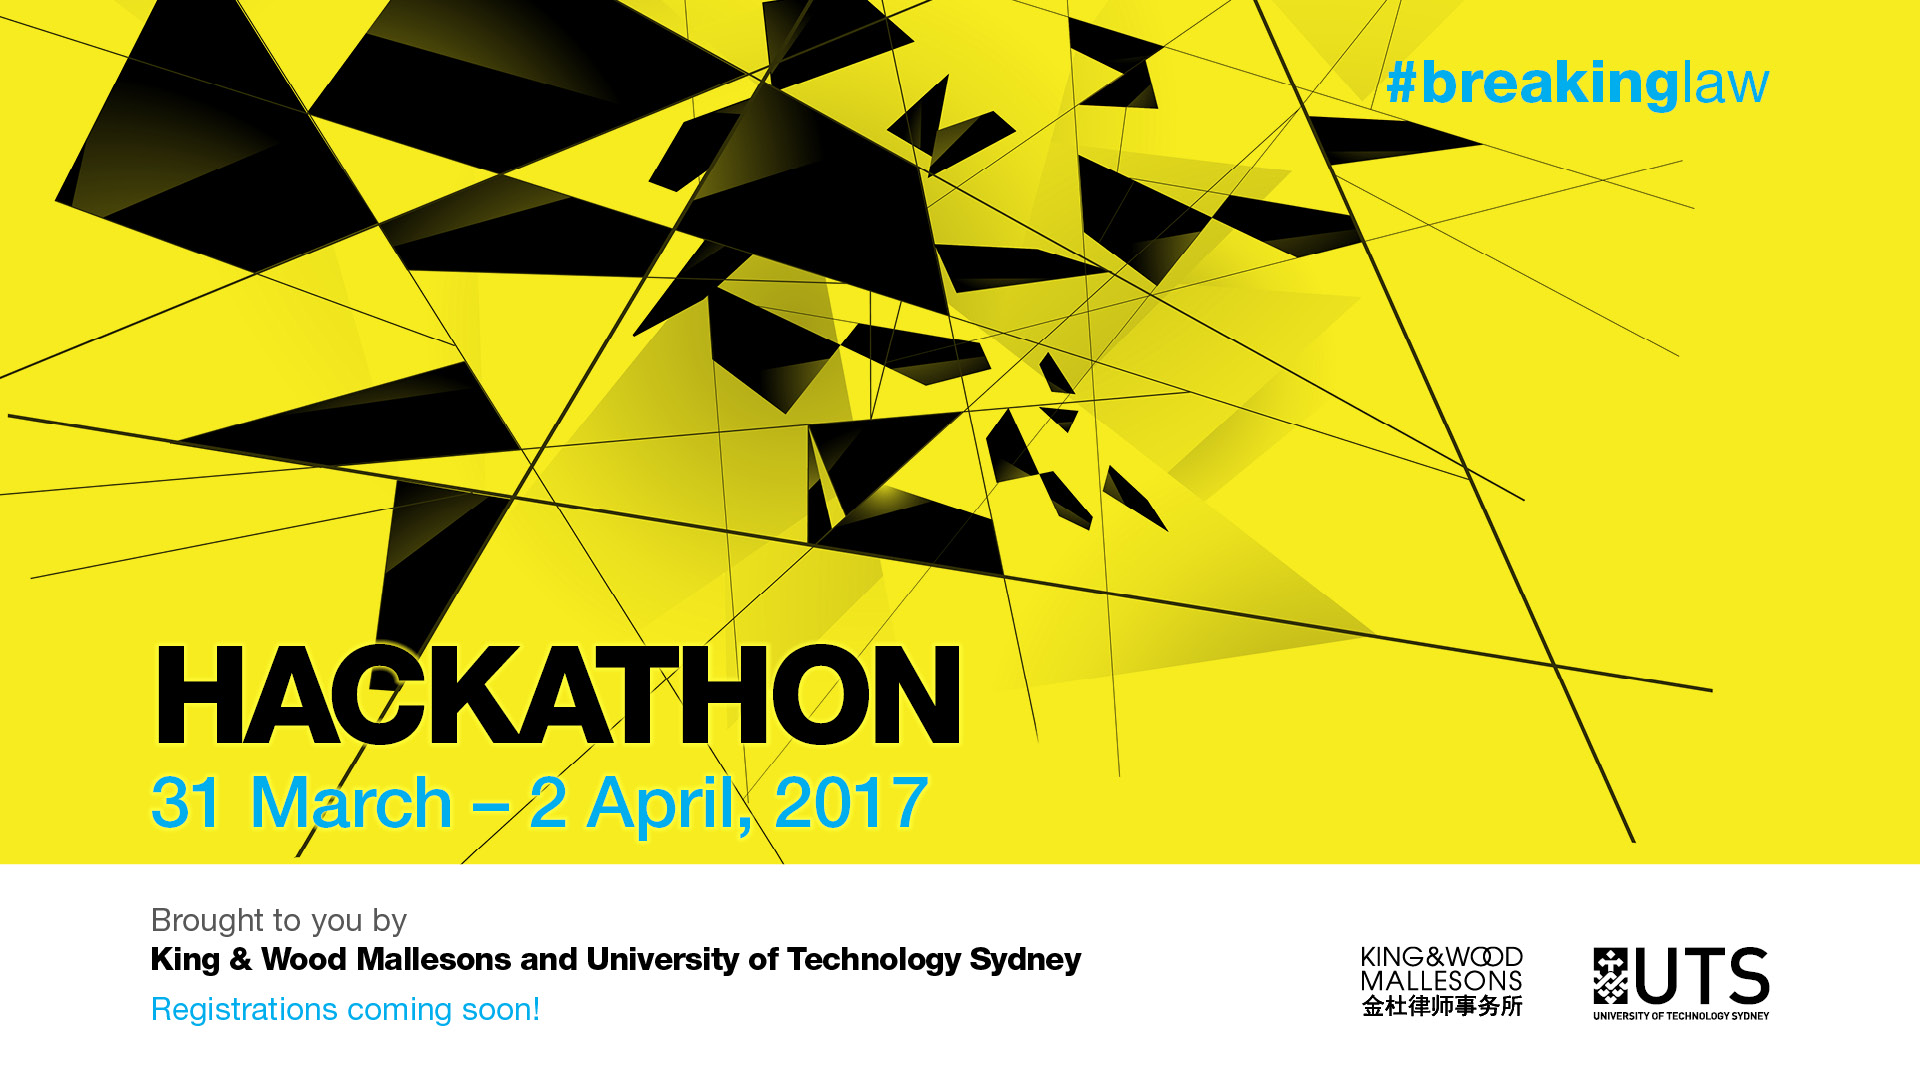 #breakinglaw Hackathon